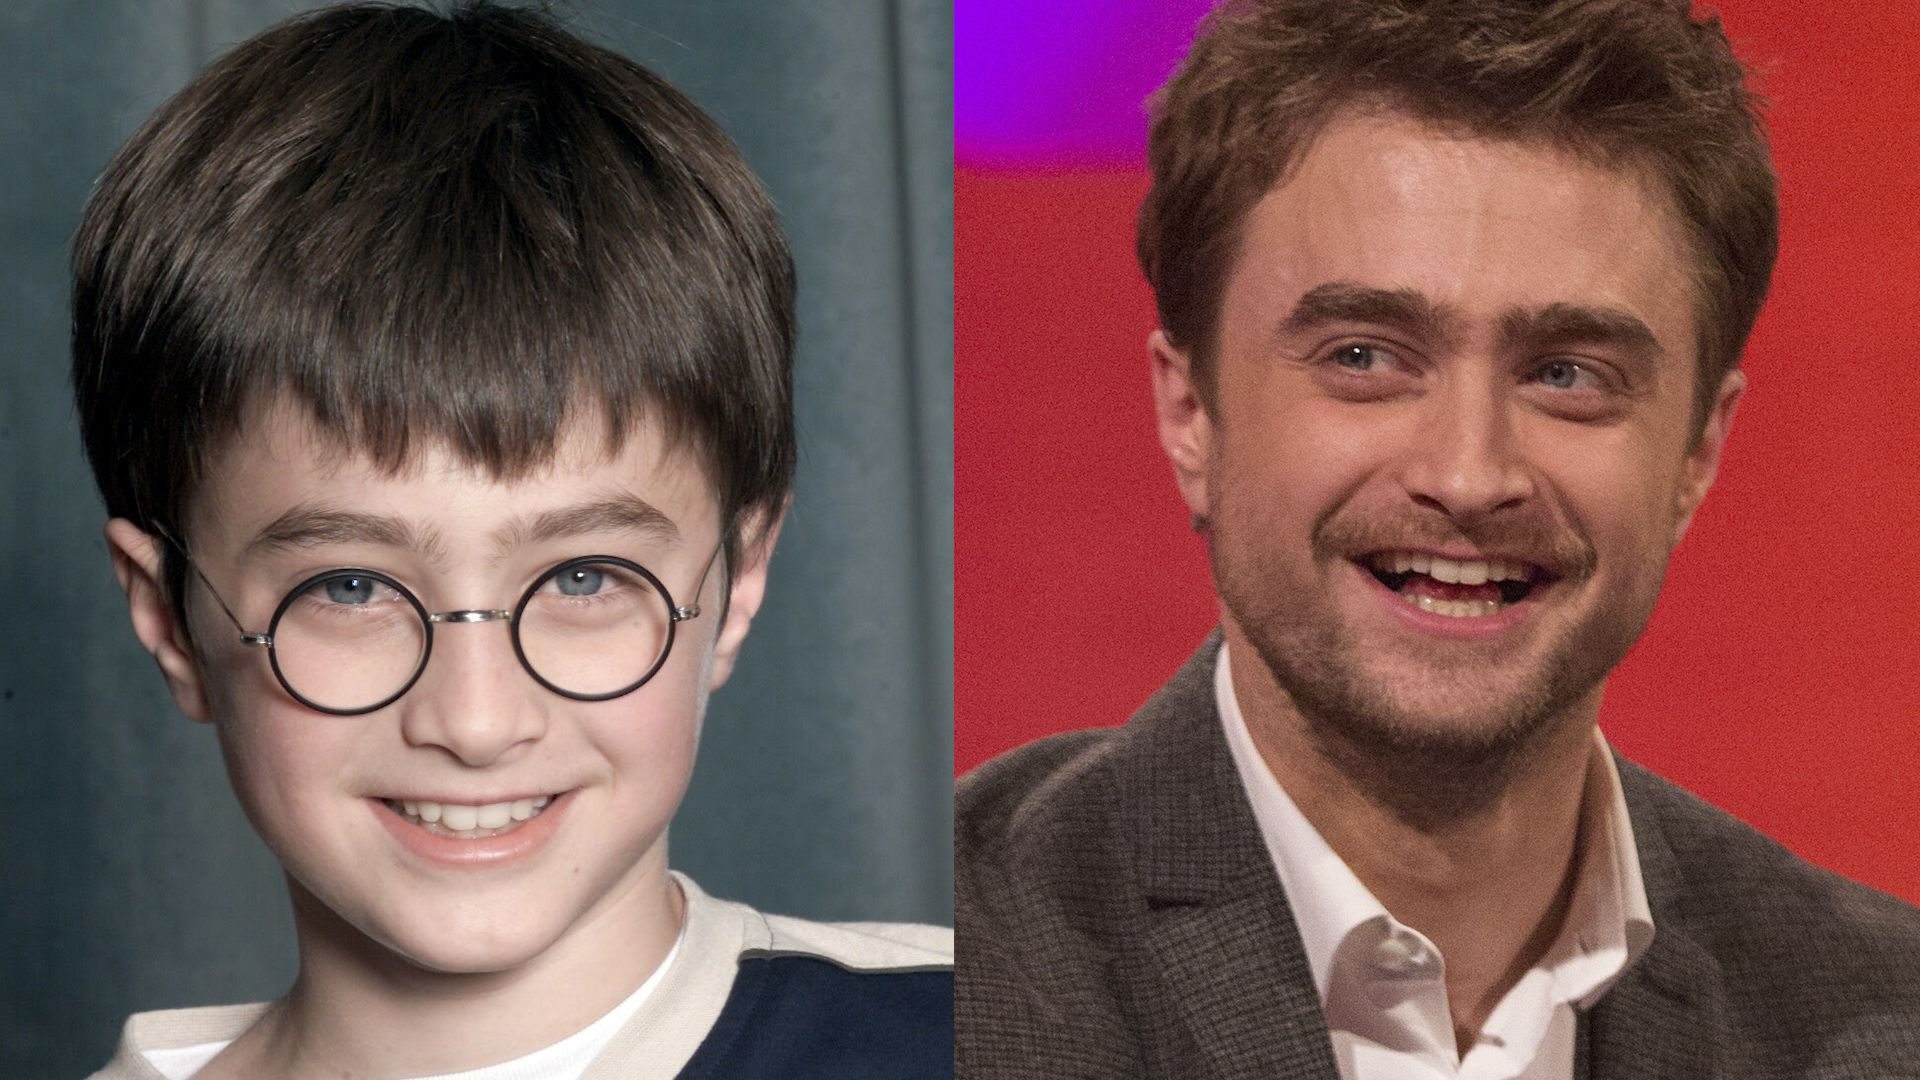 Daniel Radcliffe Through the Years